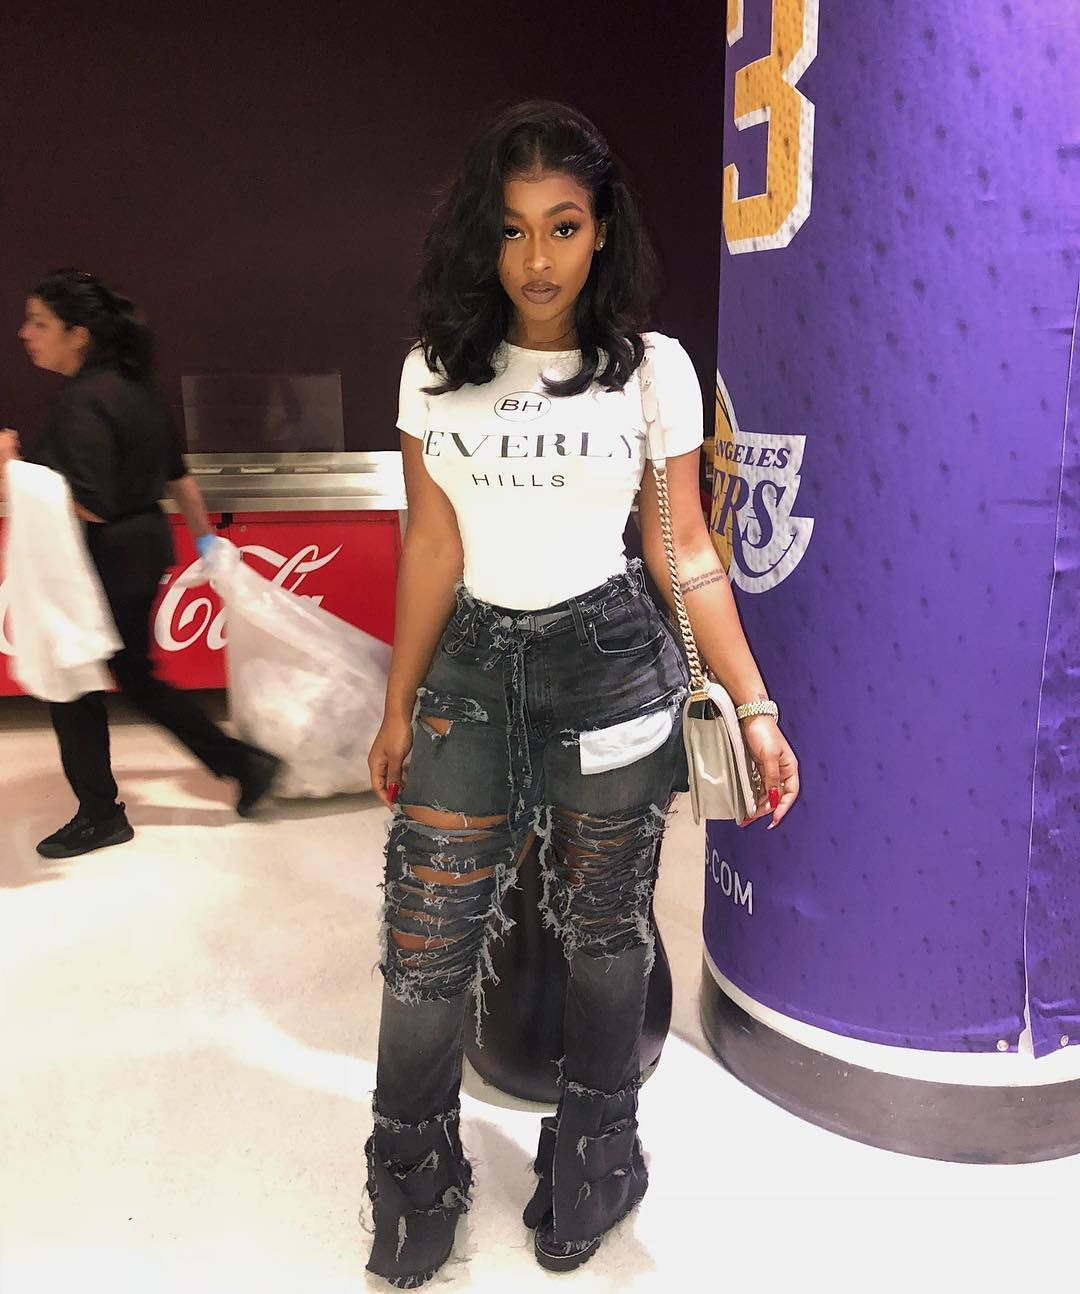 """Miracle Watts on Instagram """"Only Because I live in LA  HOUSTON don't get it messed up, It's still ROCKETS ALL DAY  lol Jeans  @stackmoneyquincy"""" is part of Fashion - 73 6k Likes, 747 Comments  Miracle Watts (@miraclewatts00) on Instagram """"Only Because I live in LA  HOUSTON don't get it messed up, It's still ROCKETS ALL DAY  lol Jeans …"""""""